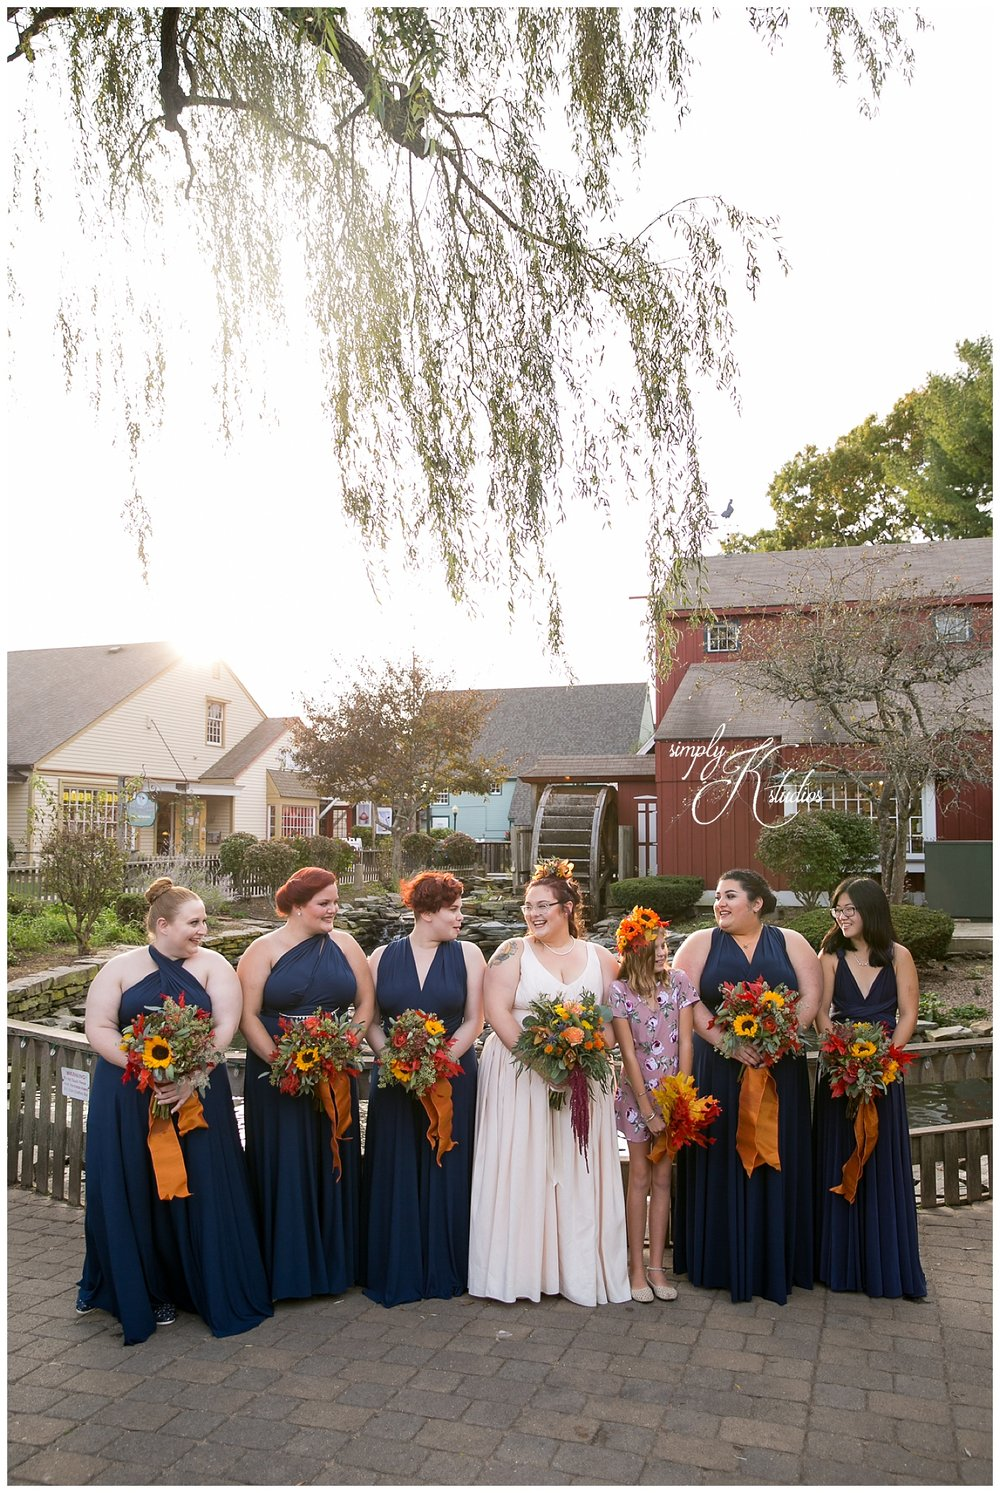 Mystic Village Wedding.jpg